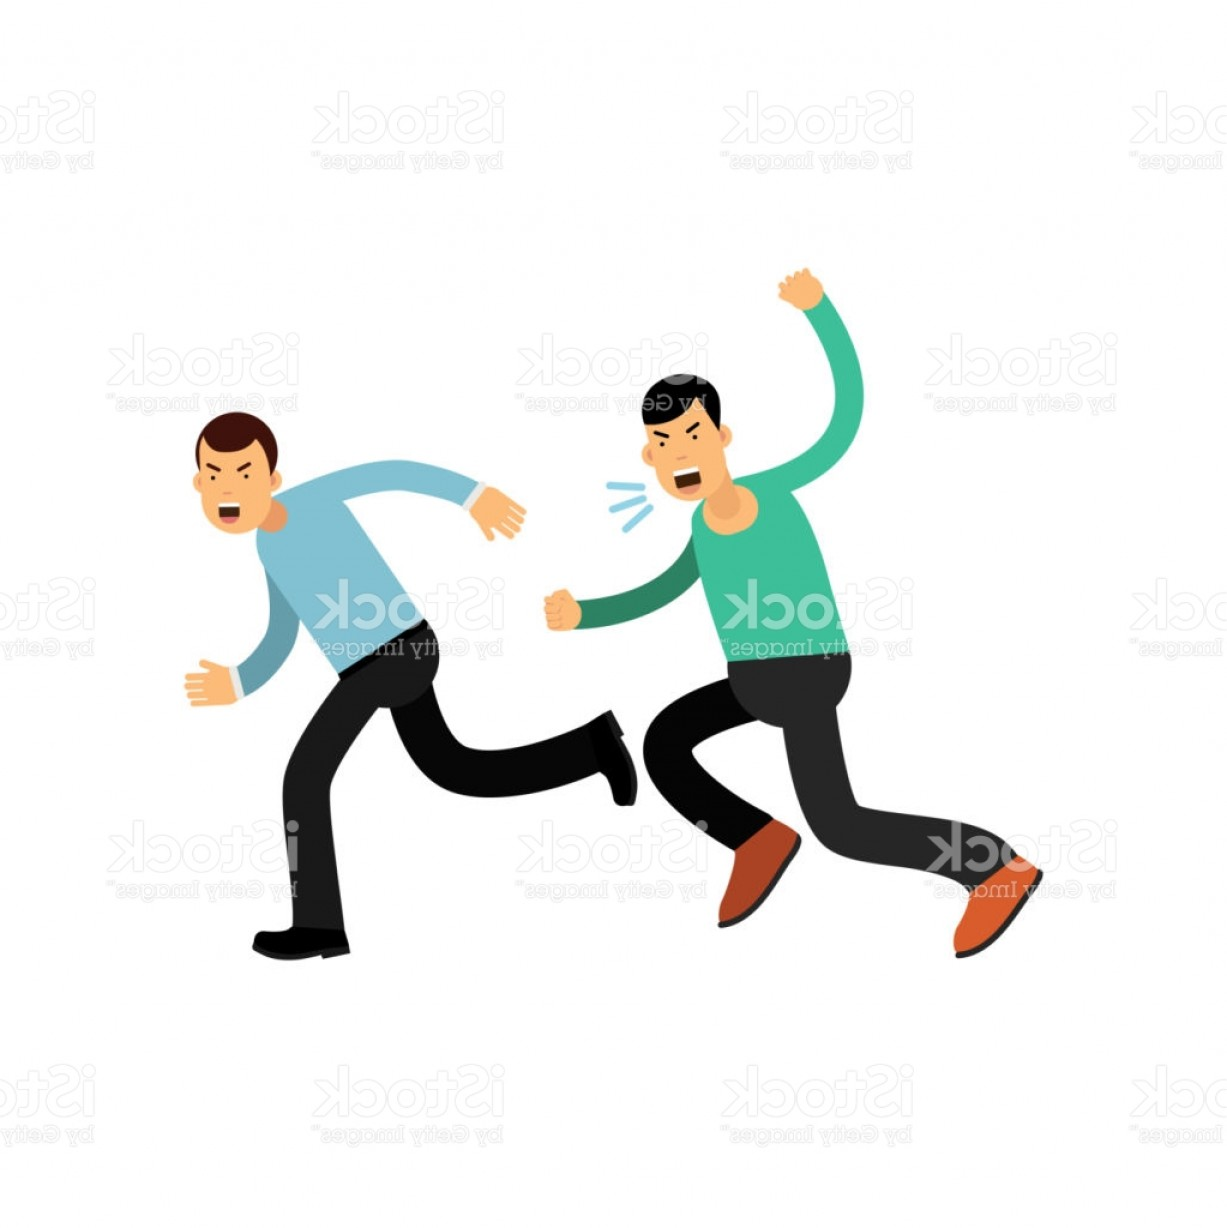 Violent Vector Art: Cartoon Illustration Of Man In Blue Sweater Running Away From Angry Guy Aggressive Gm